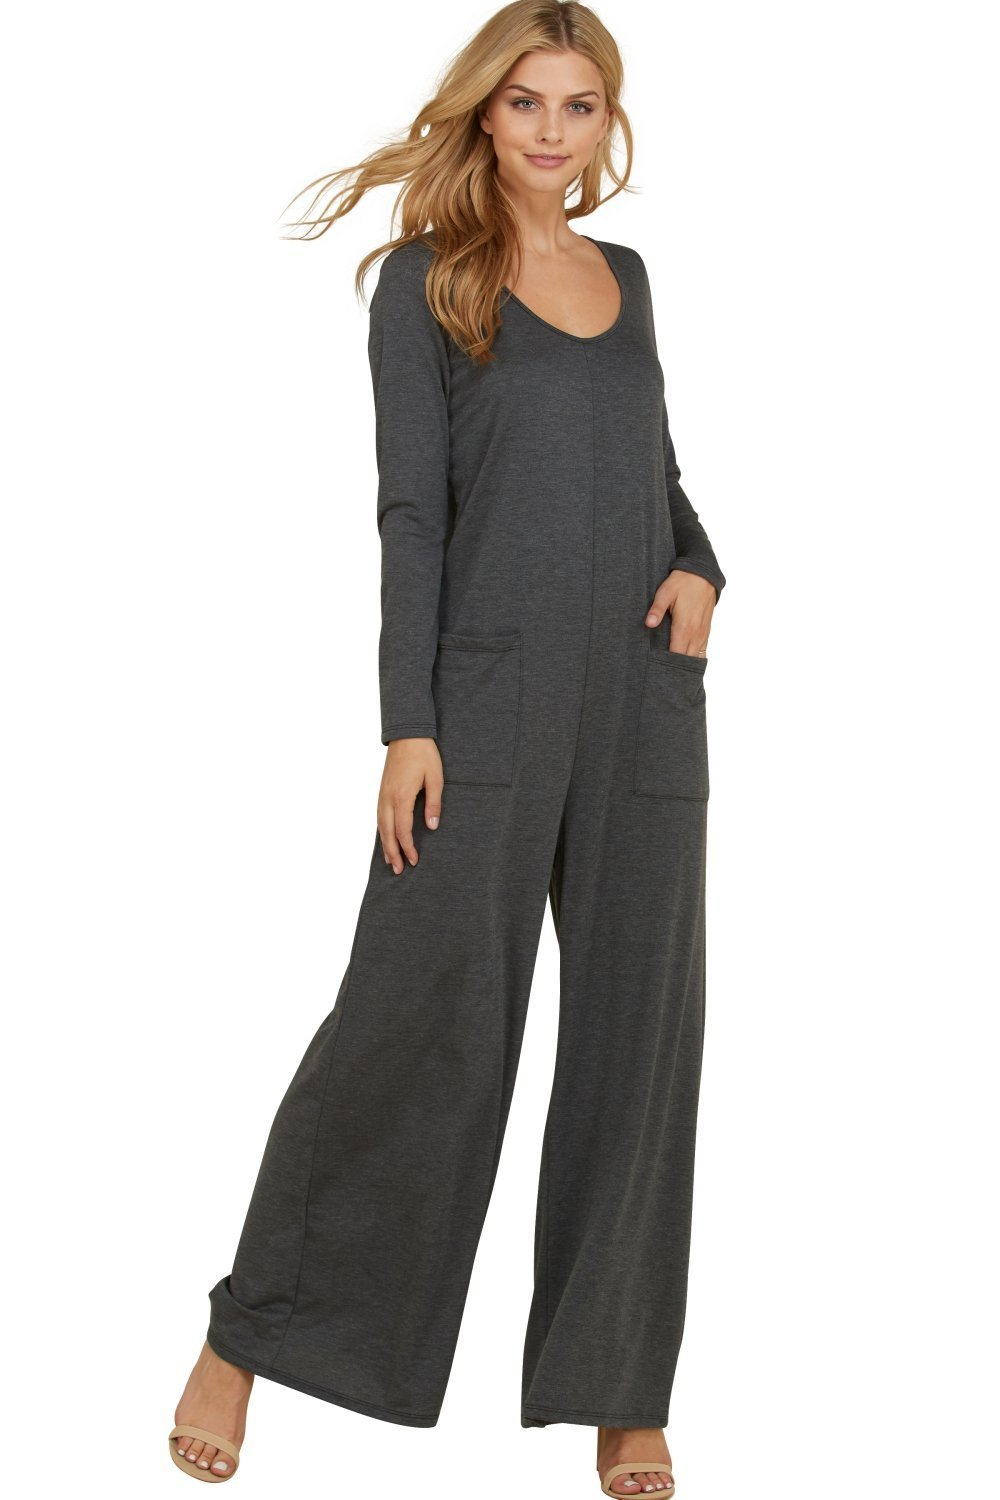 Annabelle Women's Solid Knit Fit and Flare Wide Leg Plus Size Jumpsuit Mid Grey XXX-Large J8085P